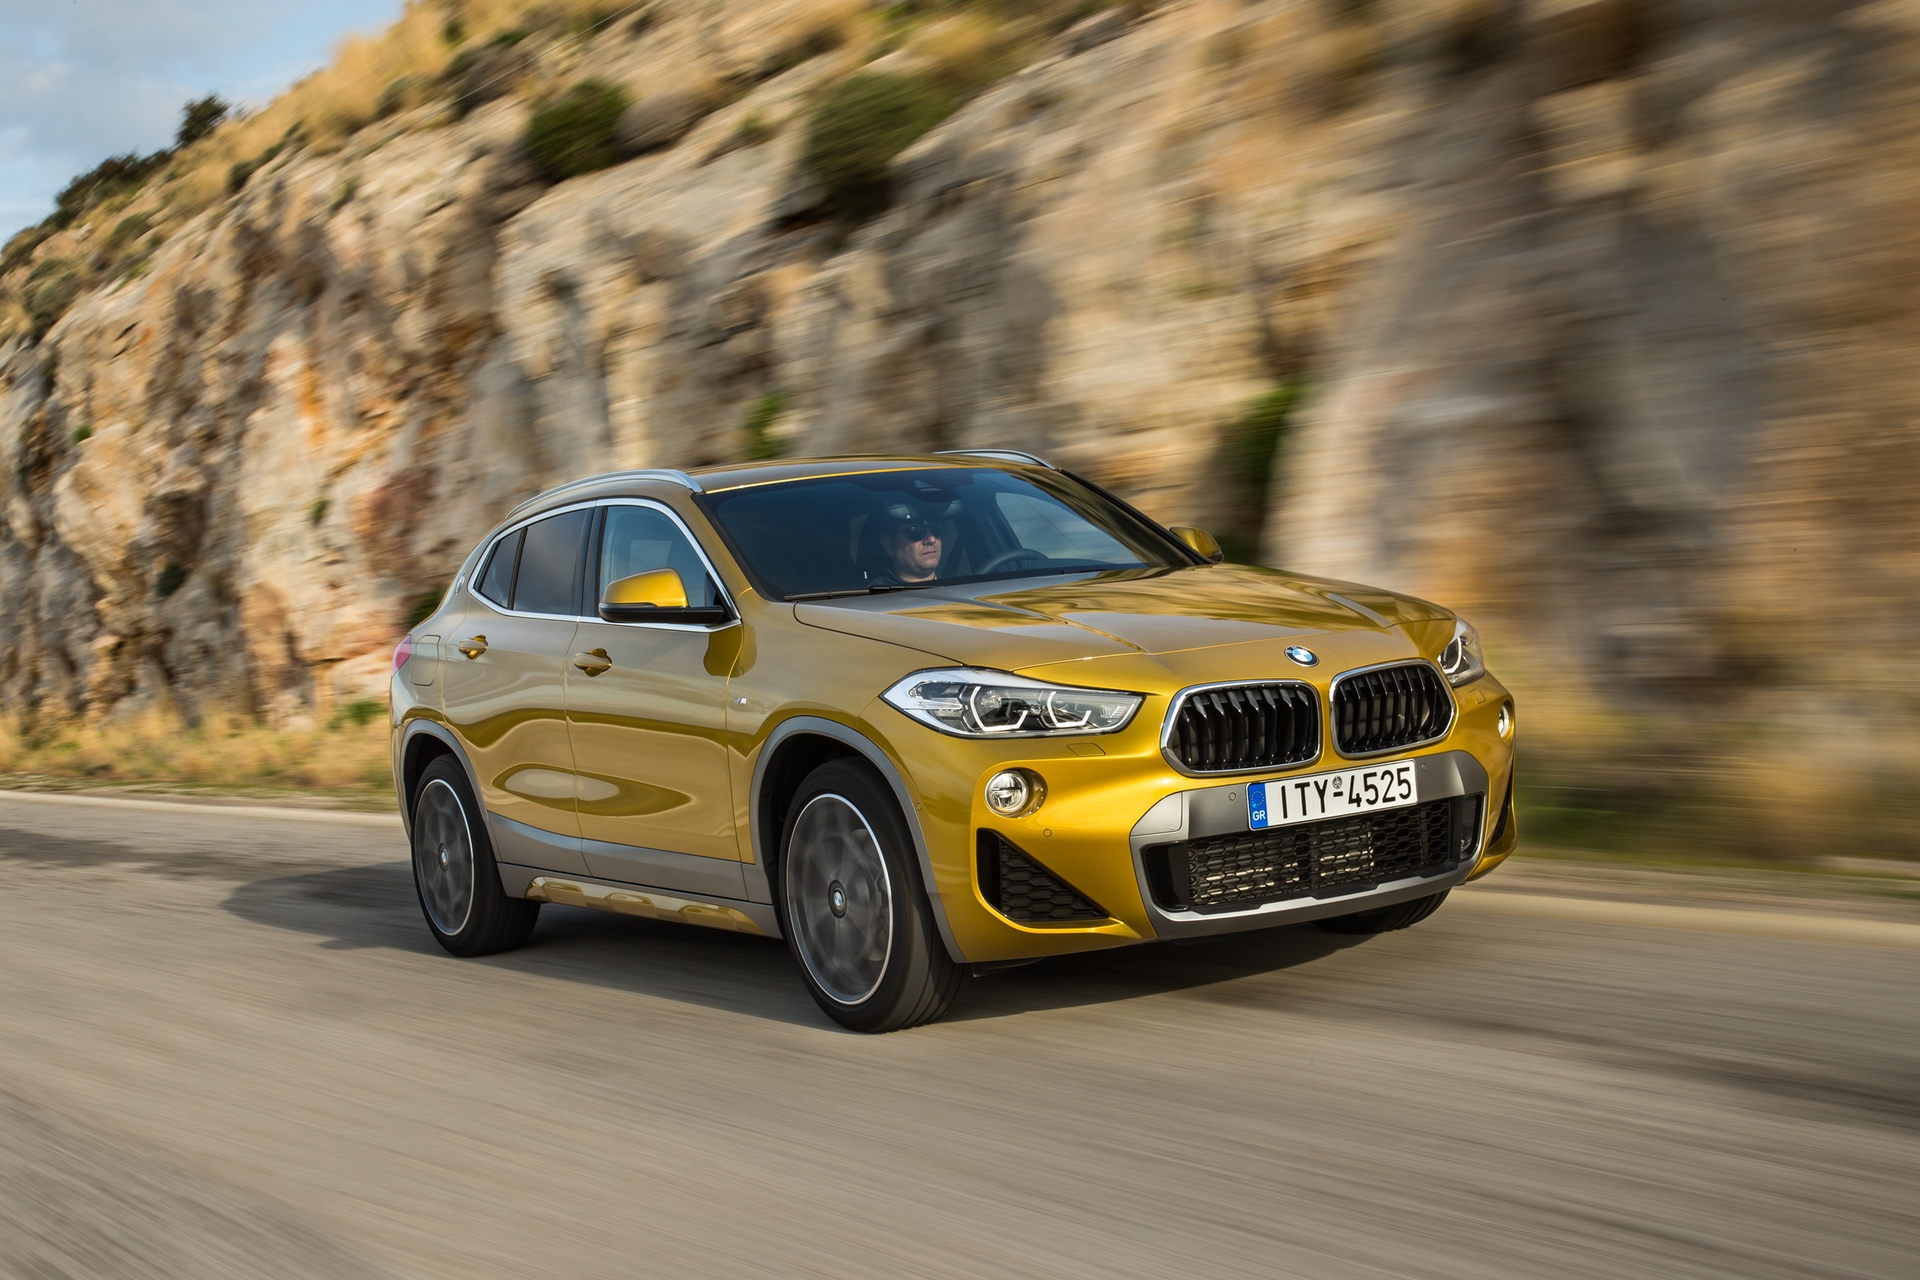 BMW_X2_Greek_presskit_0130